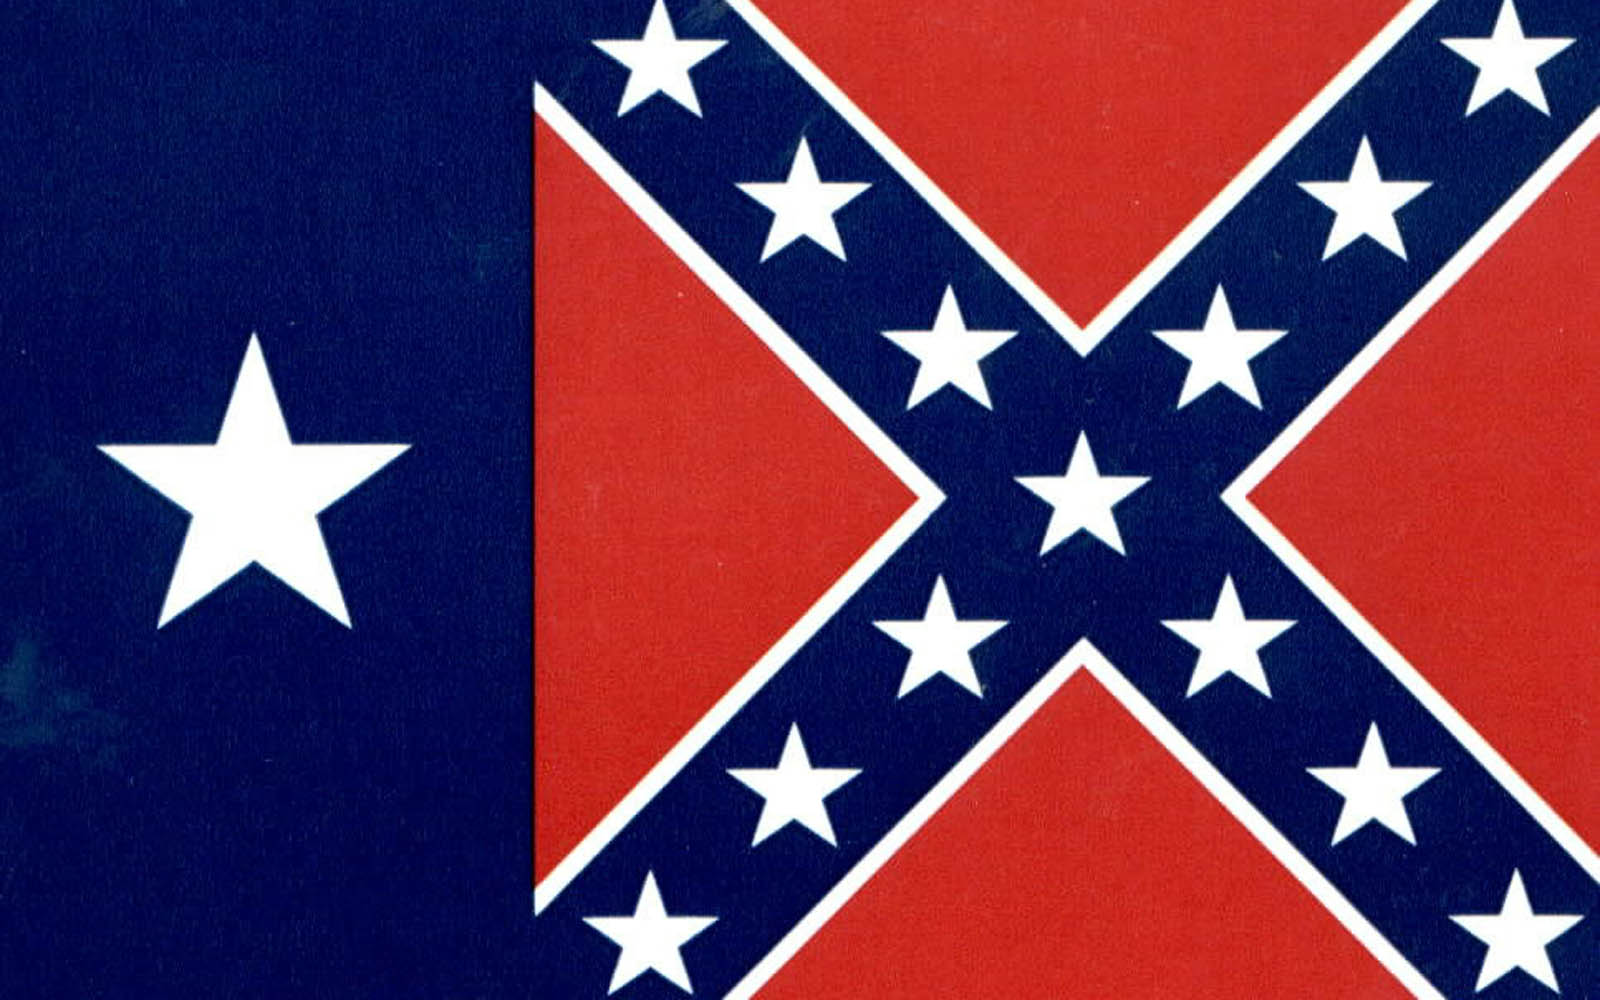 Texas Confederate Flag Wallpapers 2013 Wallpaper 1600x1000